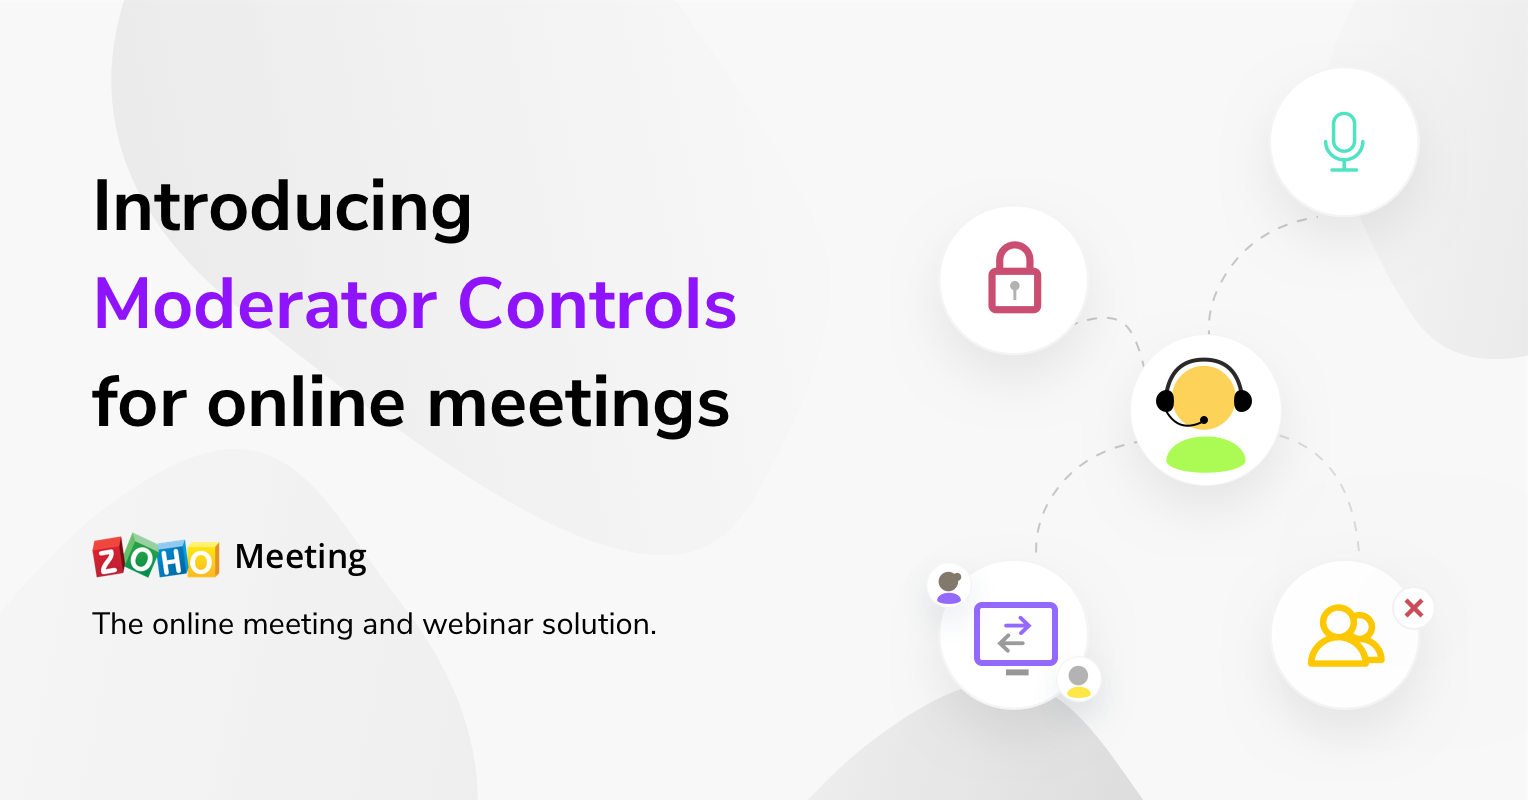 Moderator Controls for online meetings